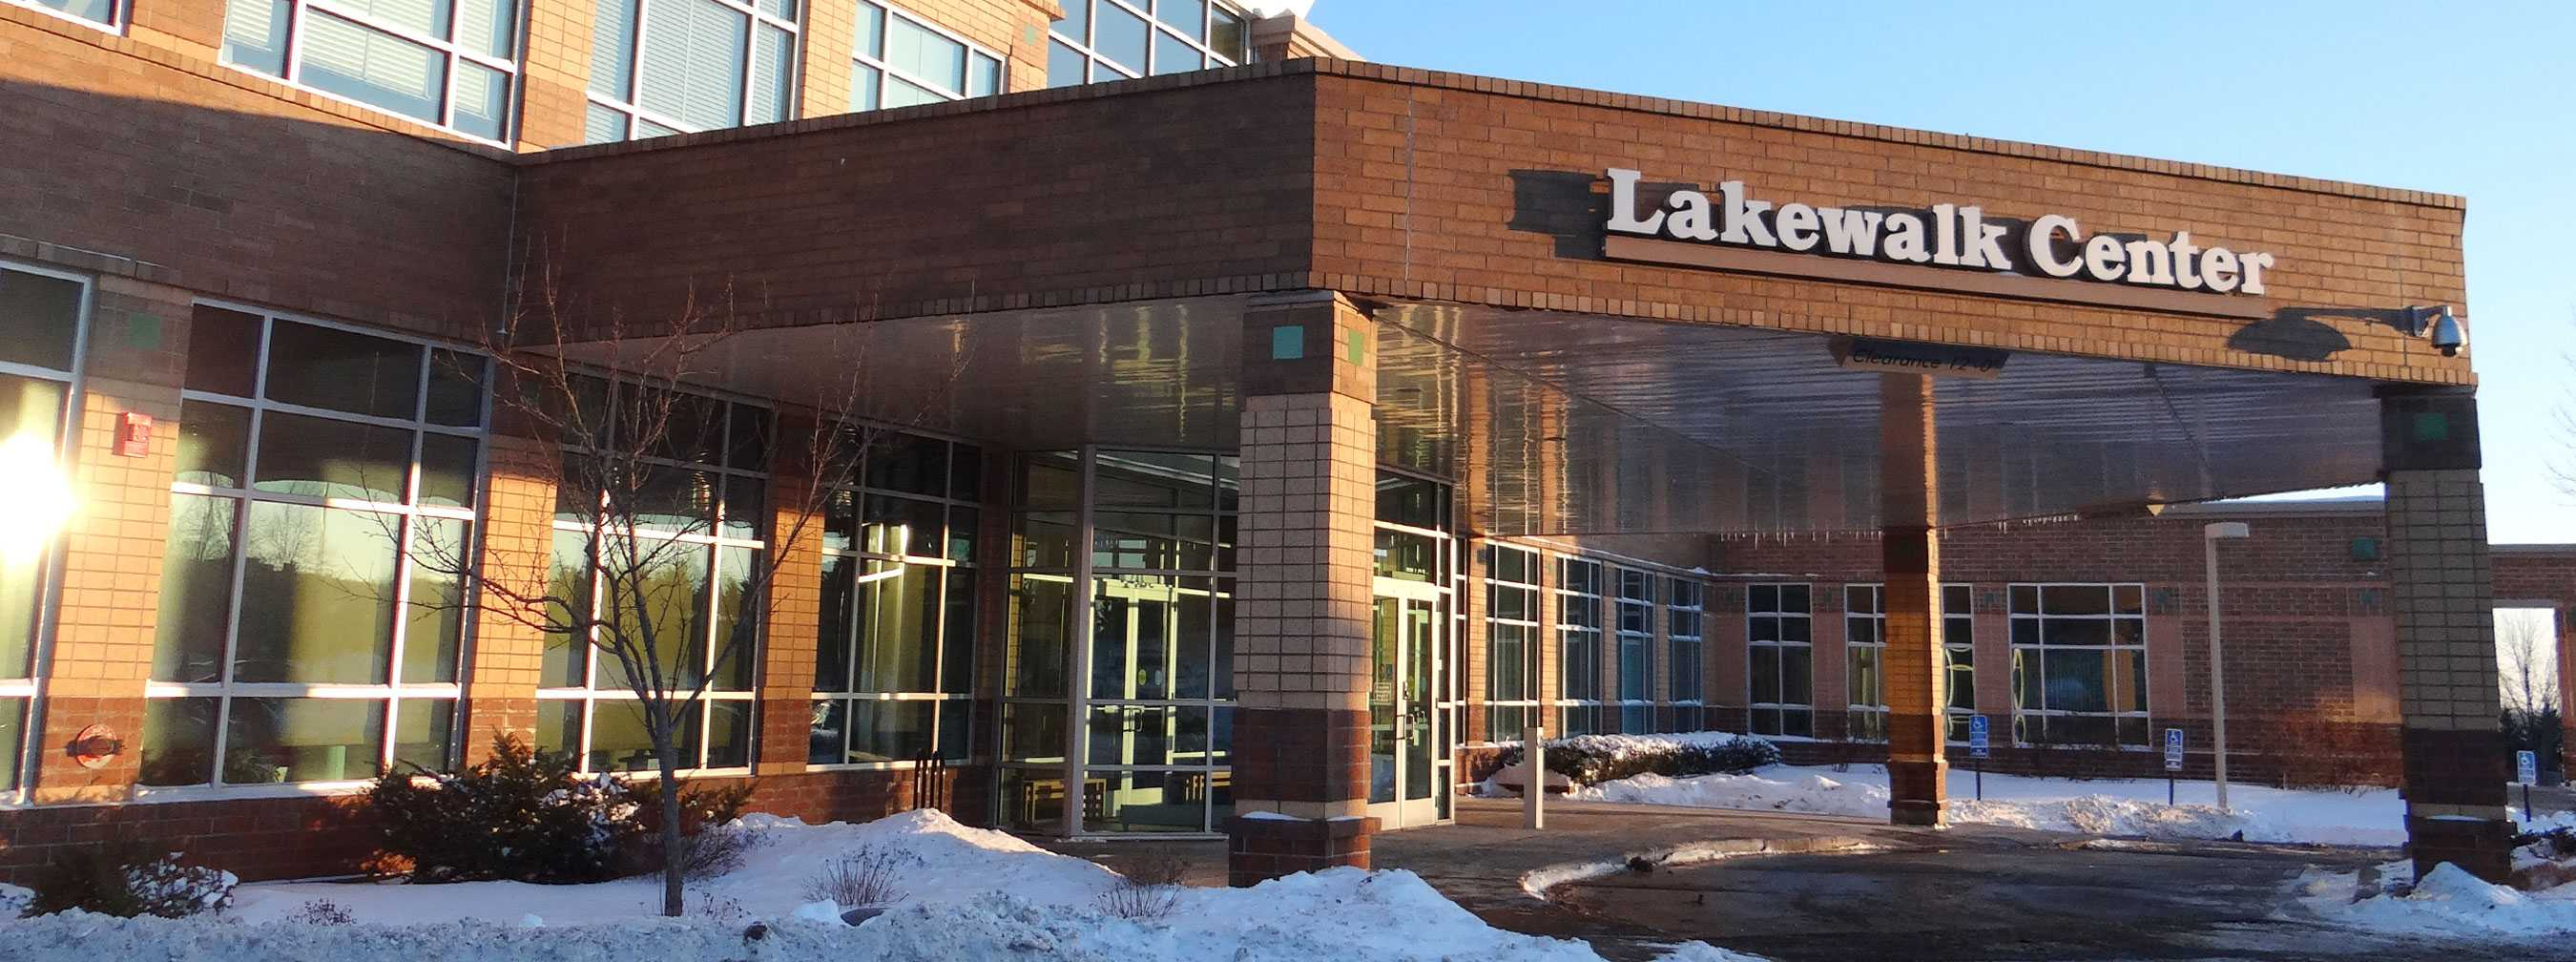 Gillette Duluth Clinic at Lakewalk Center